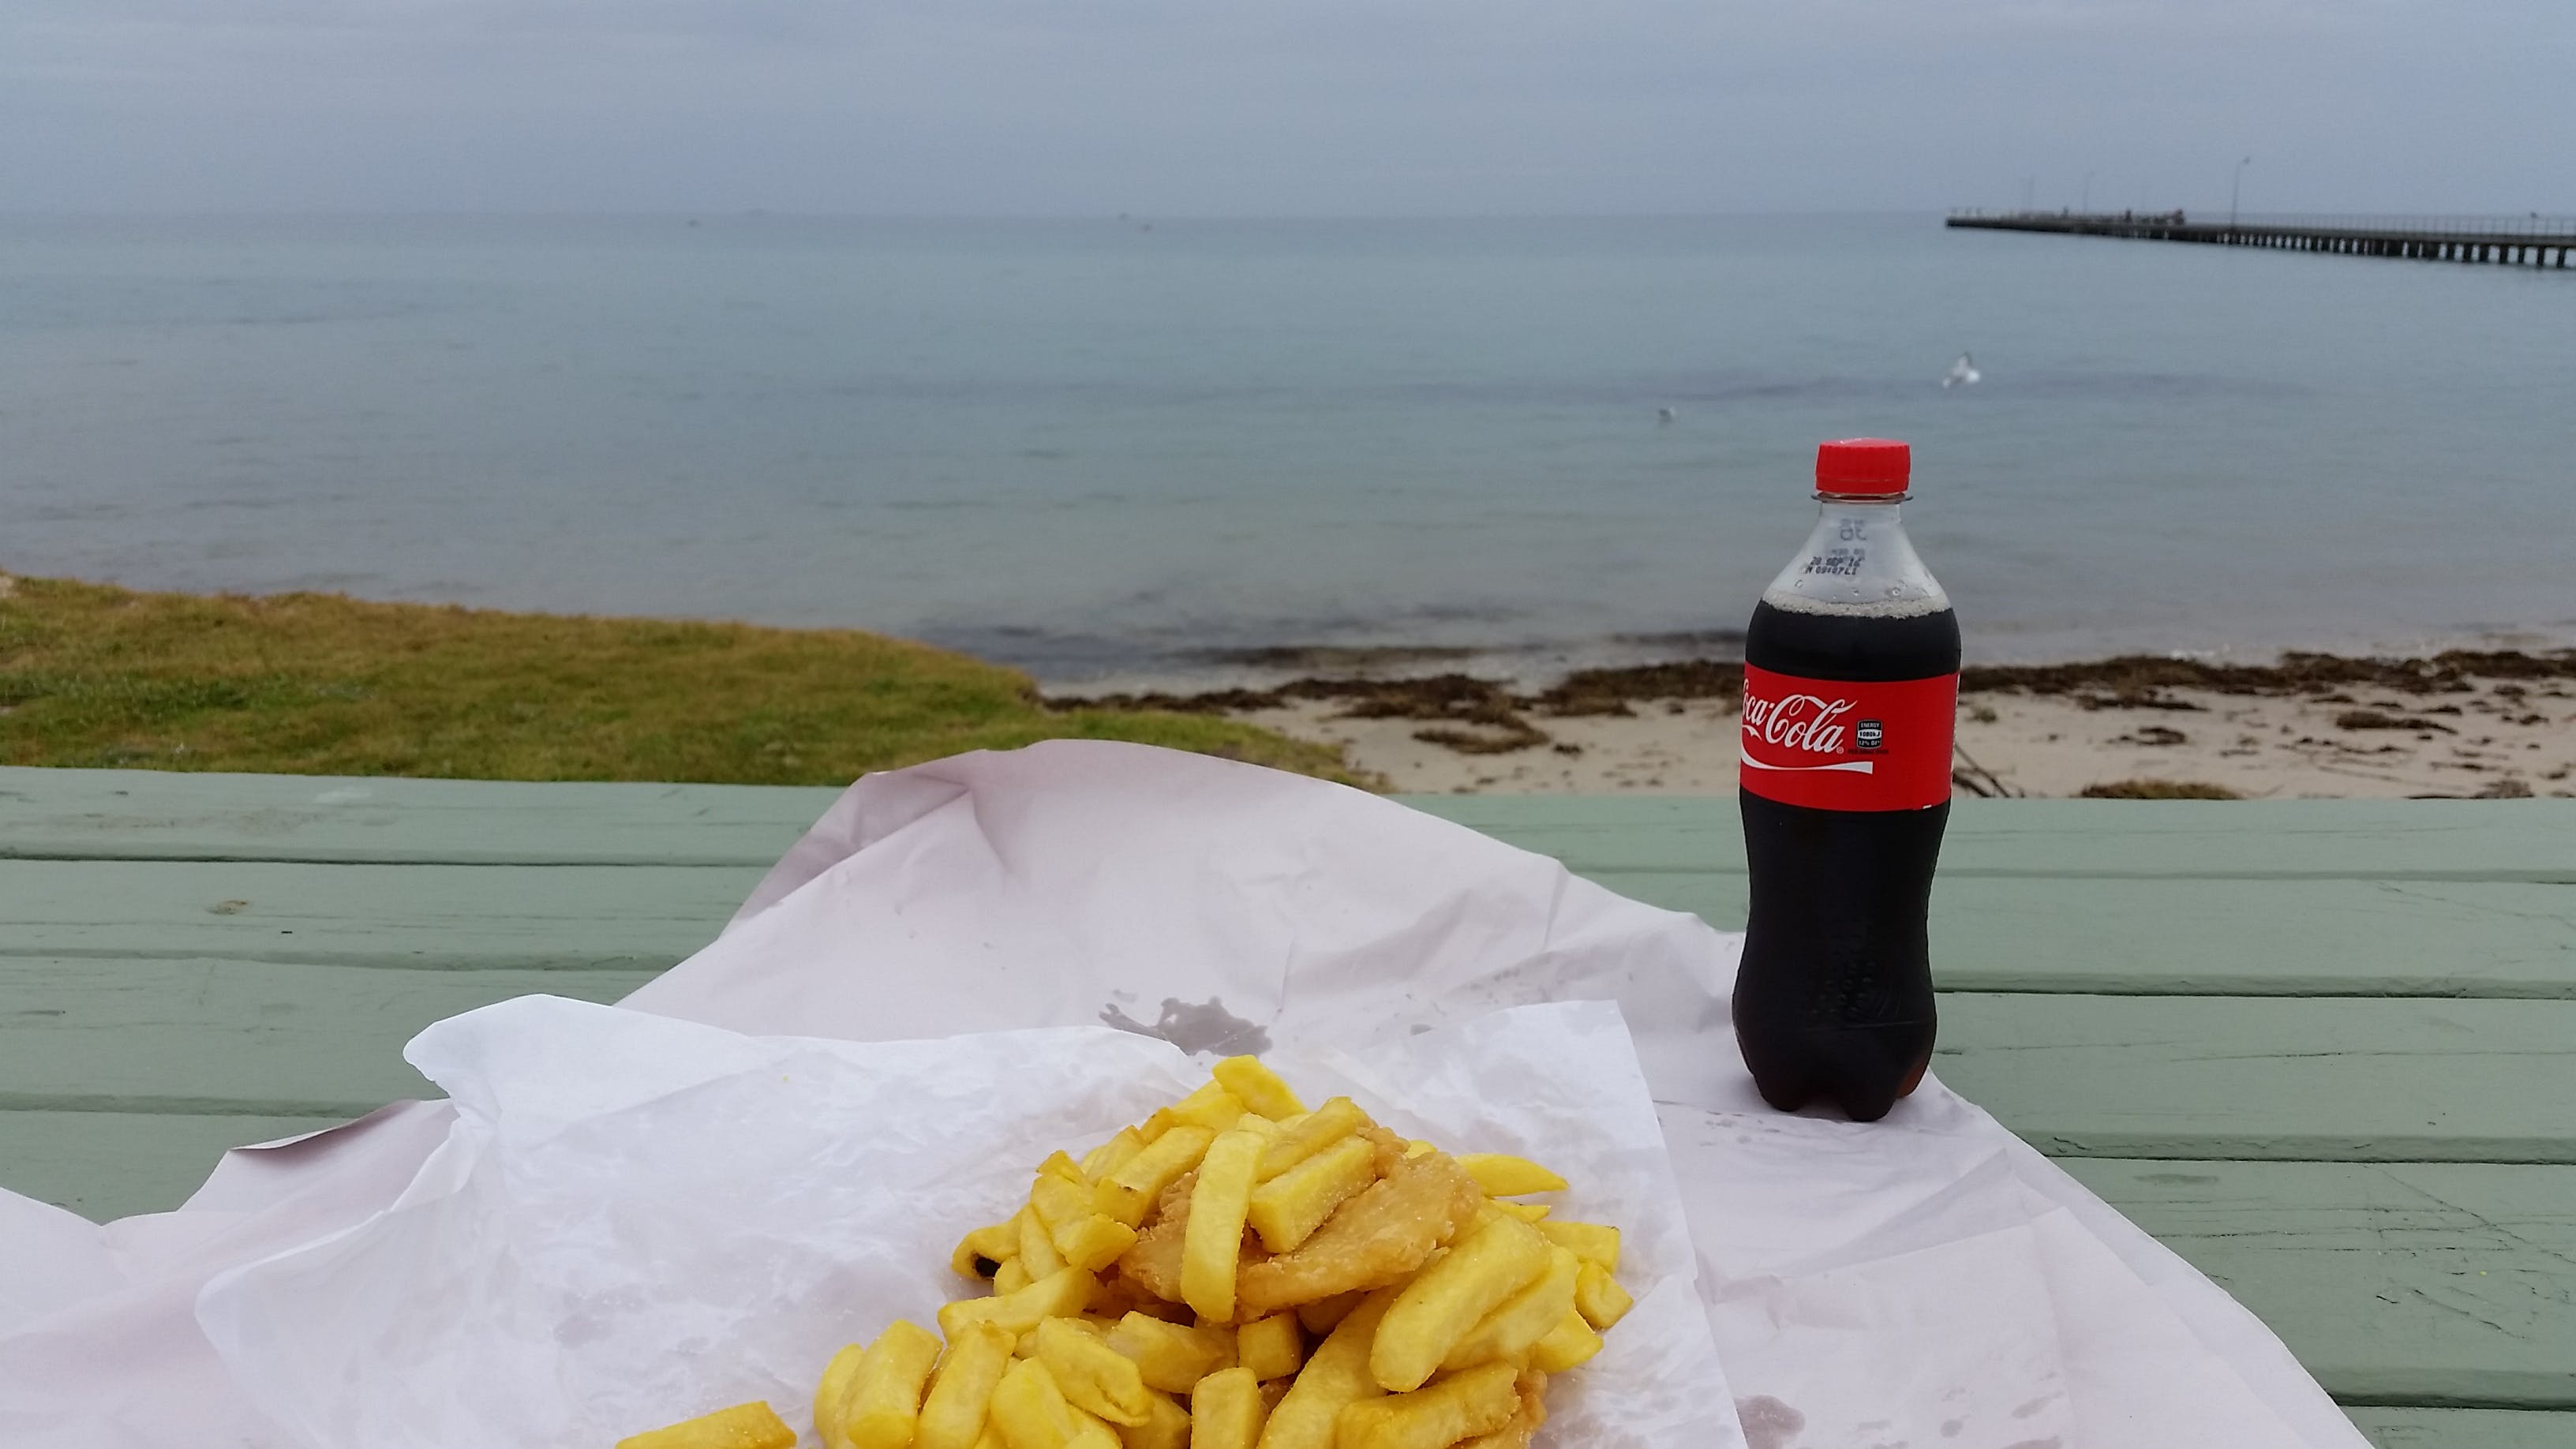 Free stock photo of beach, coke, fish and chips, Fish n Chips